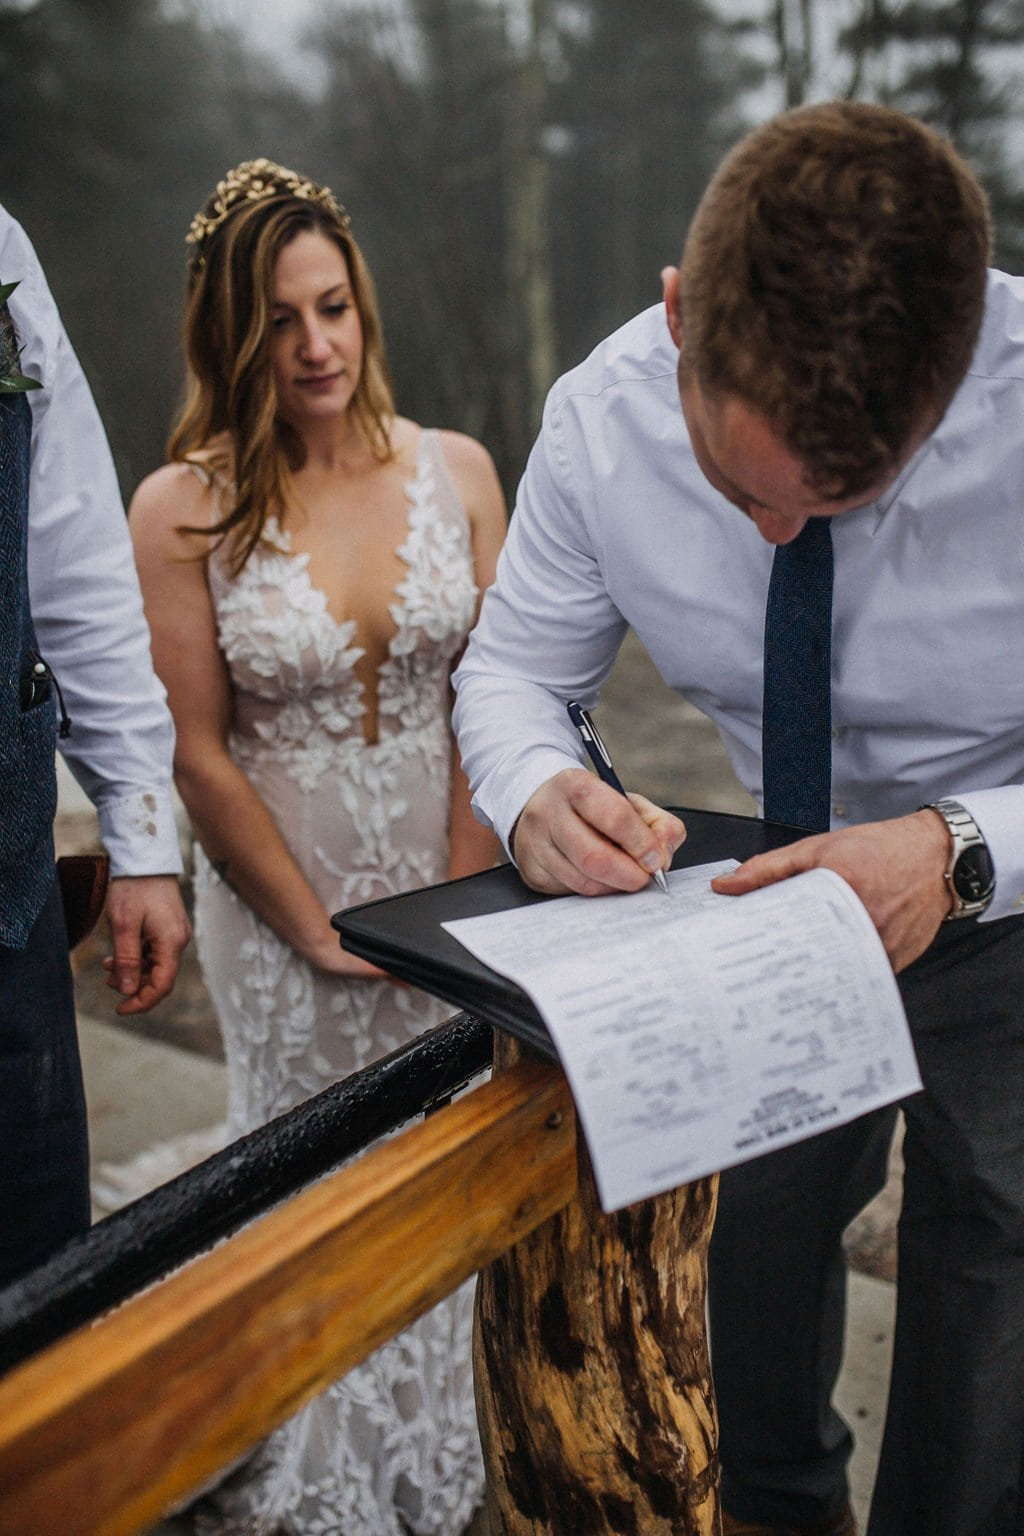 bride and groom sign marriage license